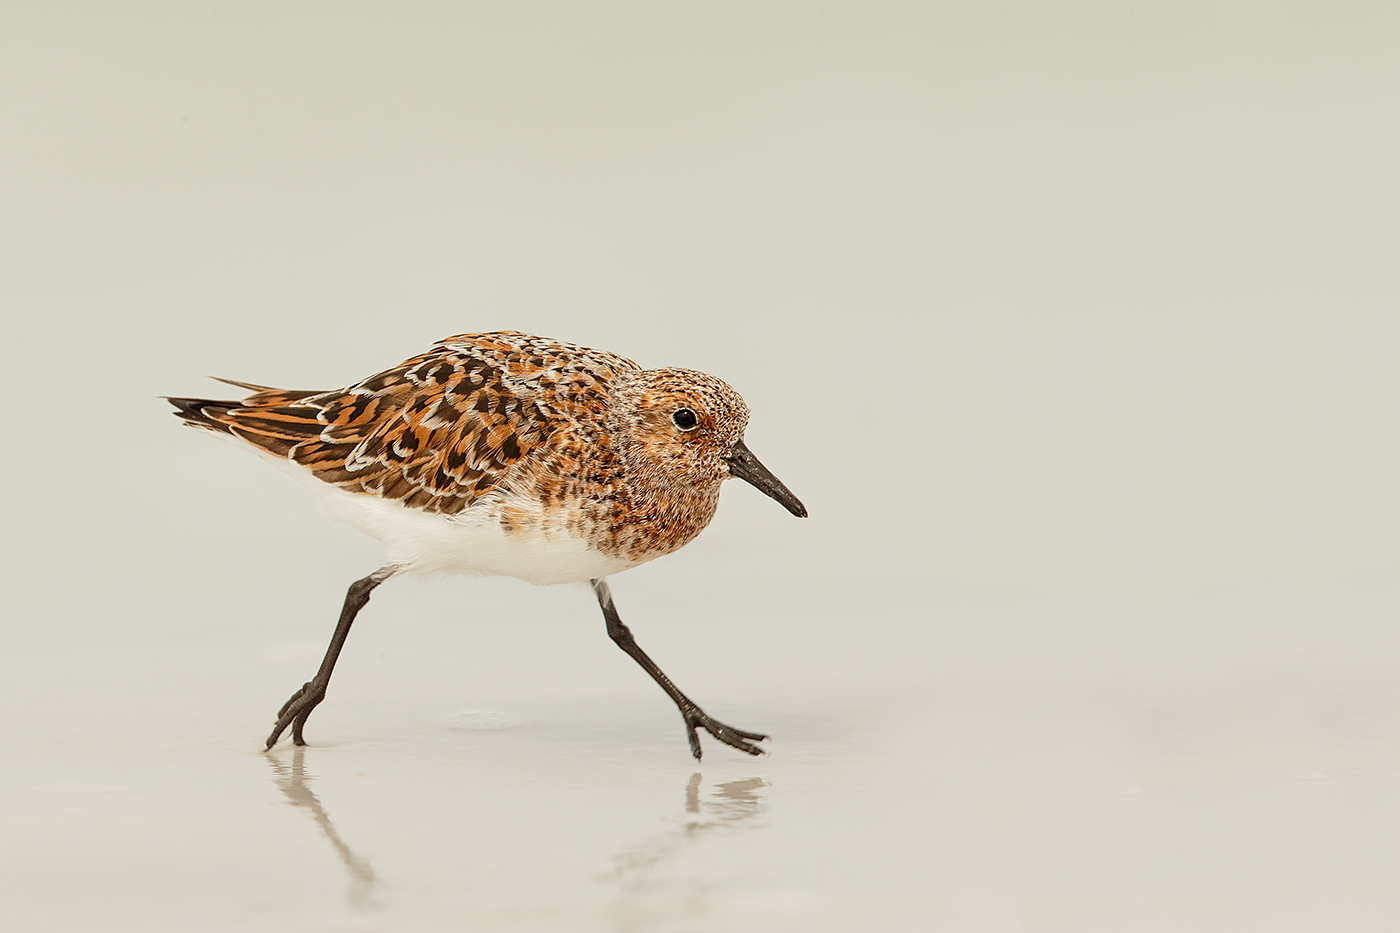 sanderling-breeding-plumage-running-bird-moved-back-in-frame-_y7o2777-fort-desoto-park-st-petersburg-fl